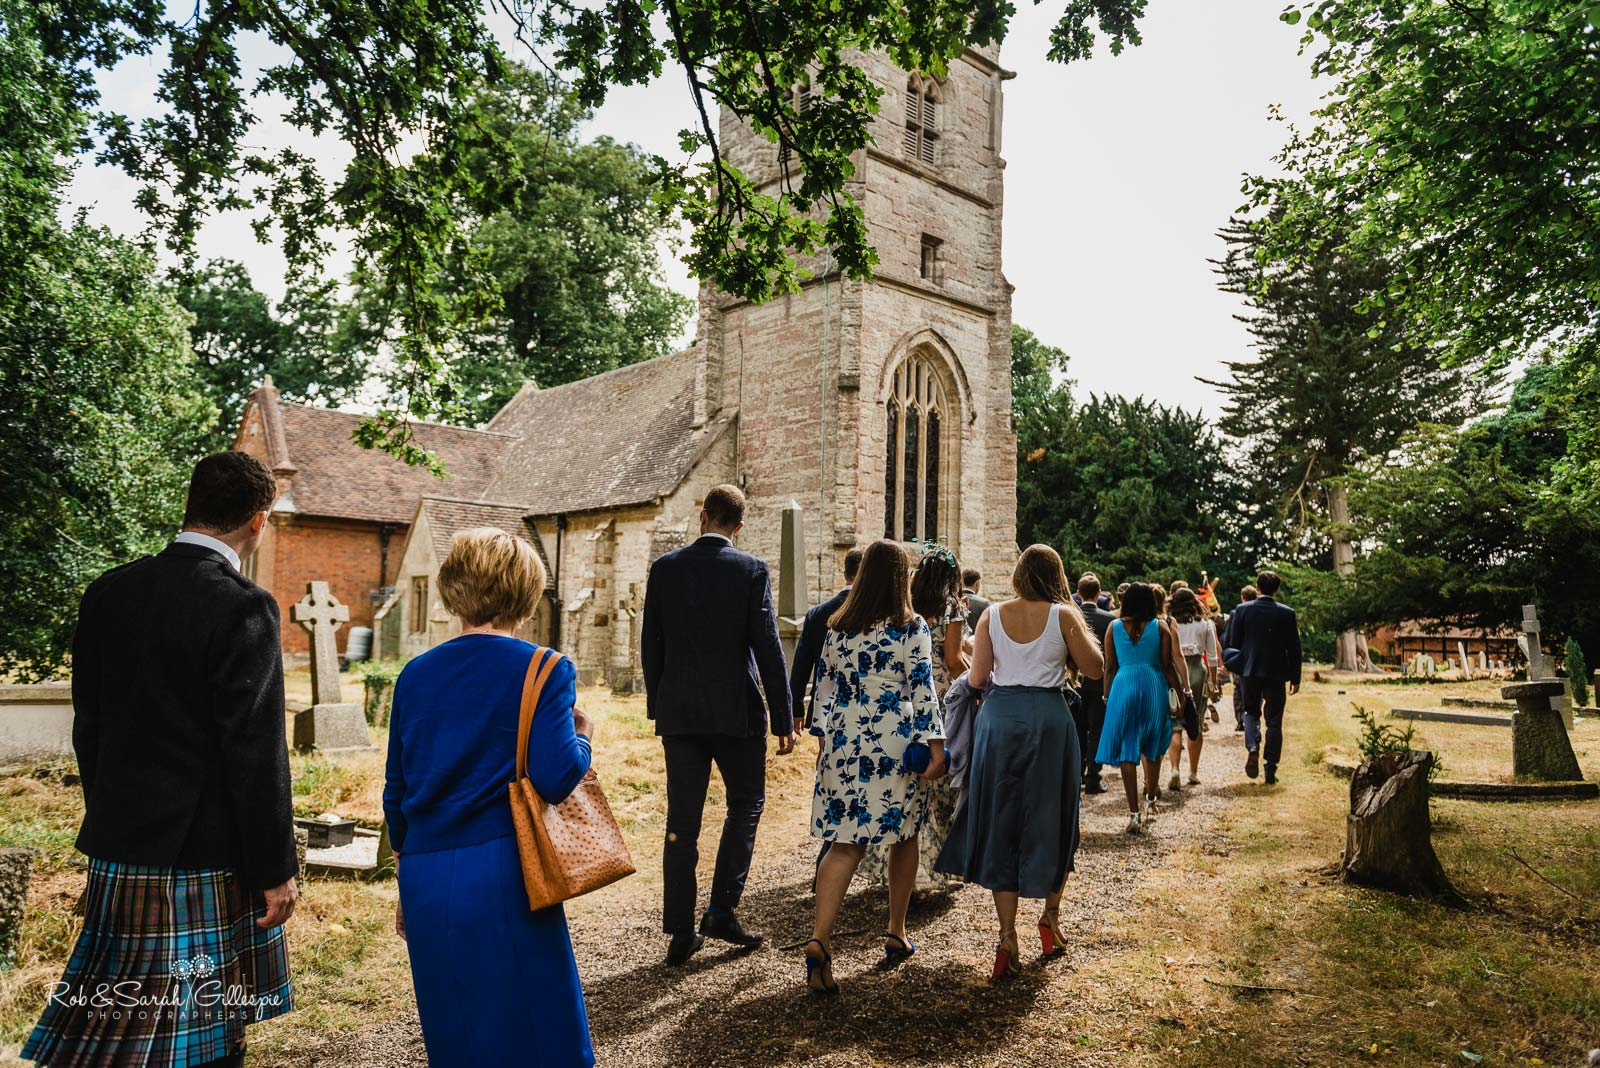 Guests arrive for wedding at St Giles church Packwood in Warwickshire